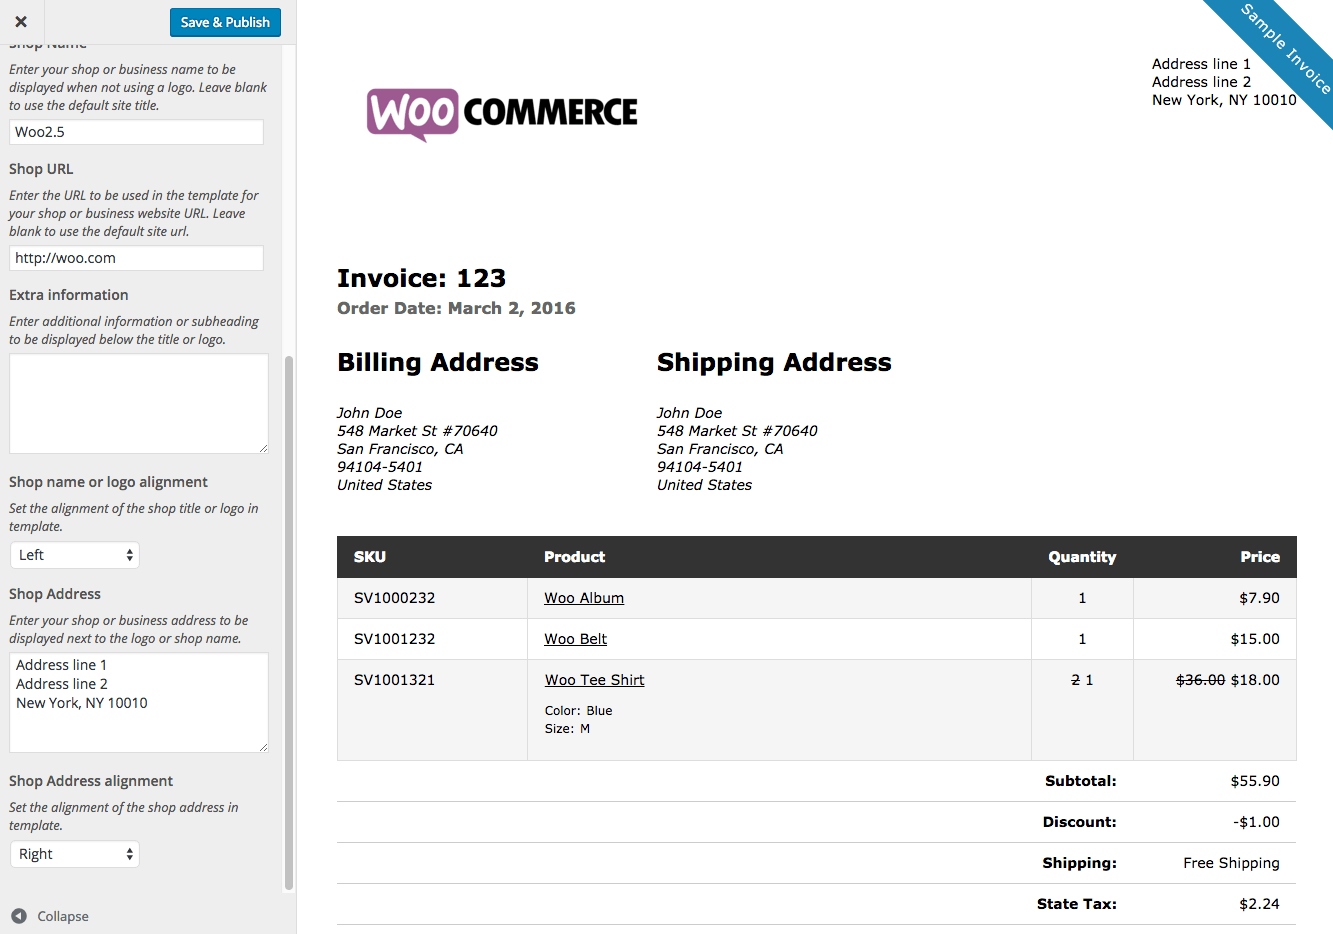 Centralasianshepherdus  Gorgeous Print Invoices Amp Packing Lists  Woocommerce With Licious Woocommerce Print Invoices  Packing Lists Customizer With Awesome Tax Invoice Template Australia Word Also Commercial Invoice Packing List In Addition Free Download Invoice Template Pdf And Excel Invoice Form As Well As Invoice Payment Terms And Conditions Additionally Proforma Of Invoice From Woocommercecom With Centralasianshepherdus  Licious Print Invoices Amp Packing Lists  Woocommerce With Awesome Woocommerce Print Invoices  Packing Lists Customizer And Gorgeous Tax Invoice Template Australia Word Also Commercial Invoice Packing List In Addition Free Download Invoice Template Pdf From Woocommercecom